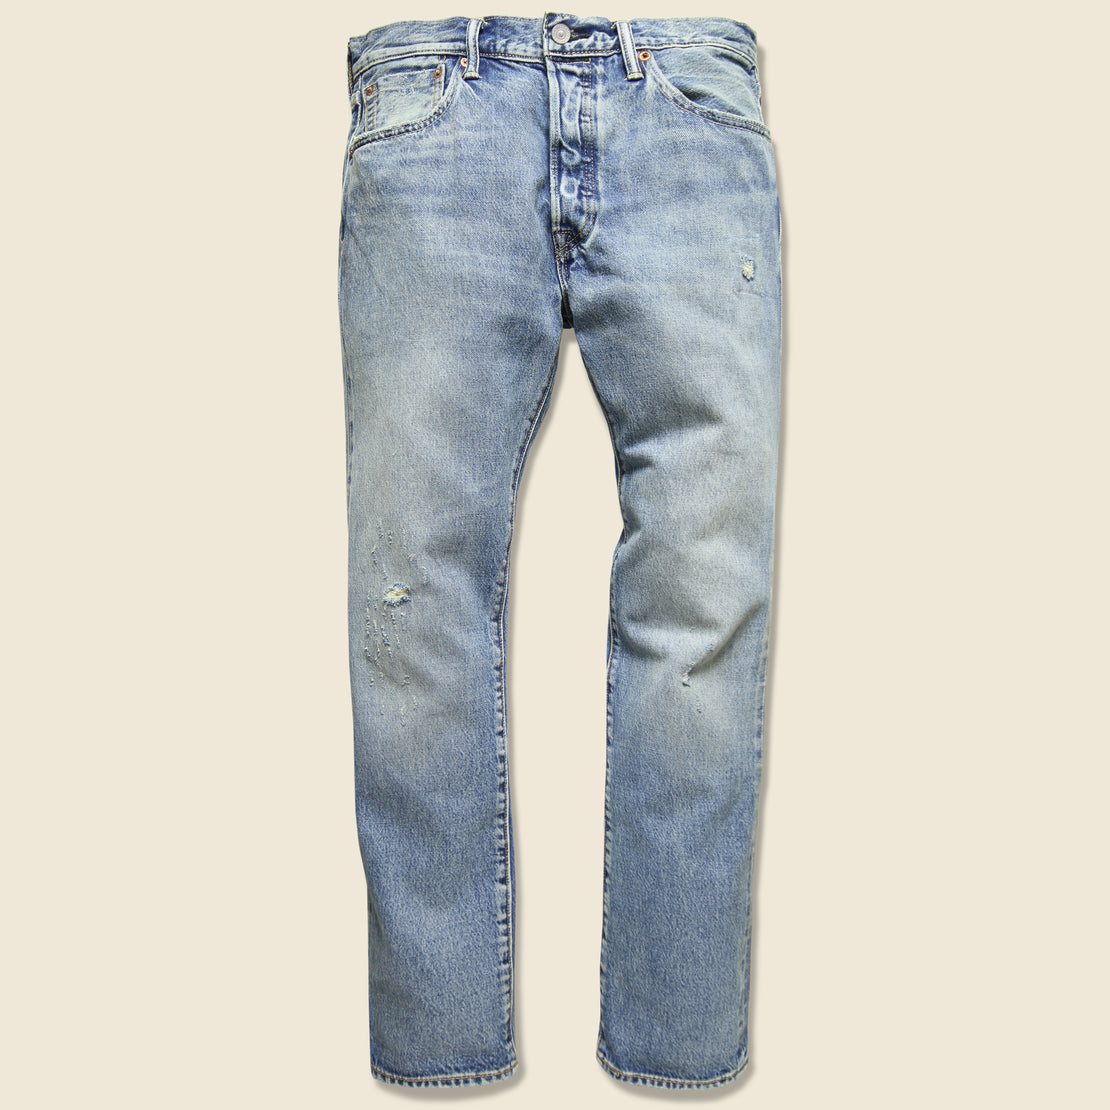 Levis Premium 501 Selvedge Jean - Redwood Ave